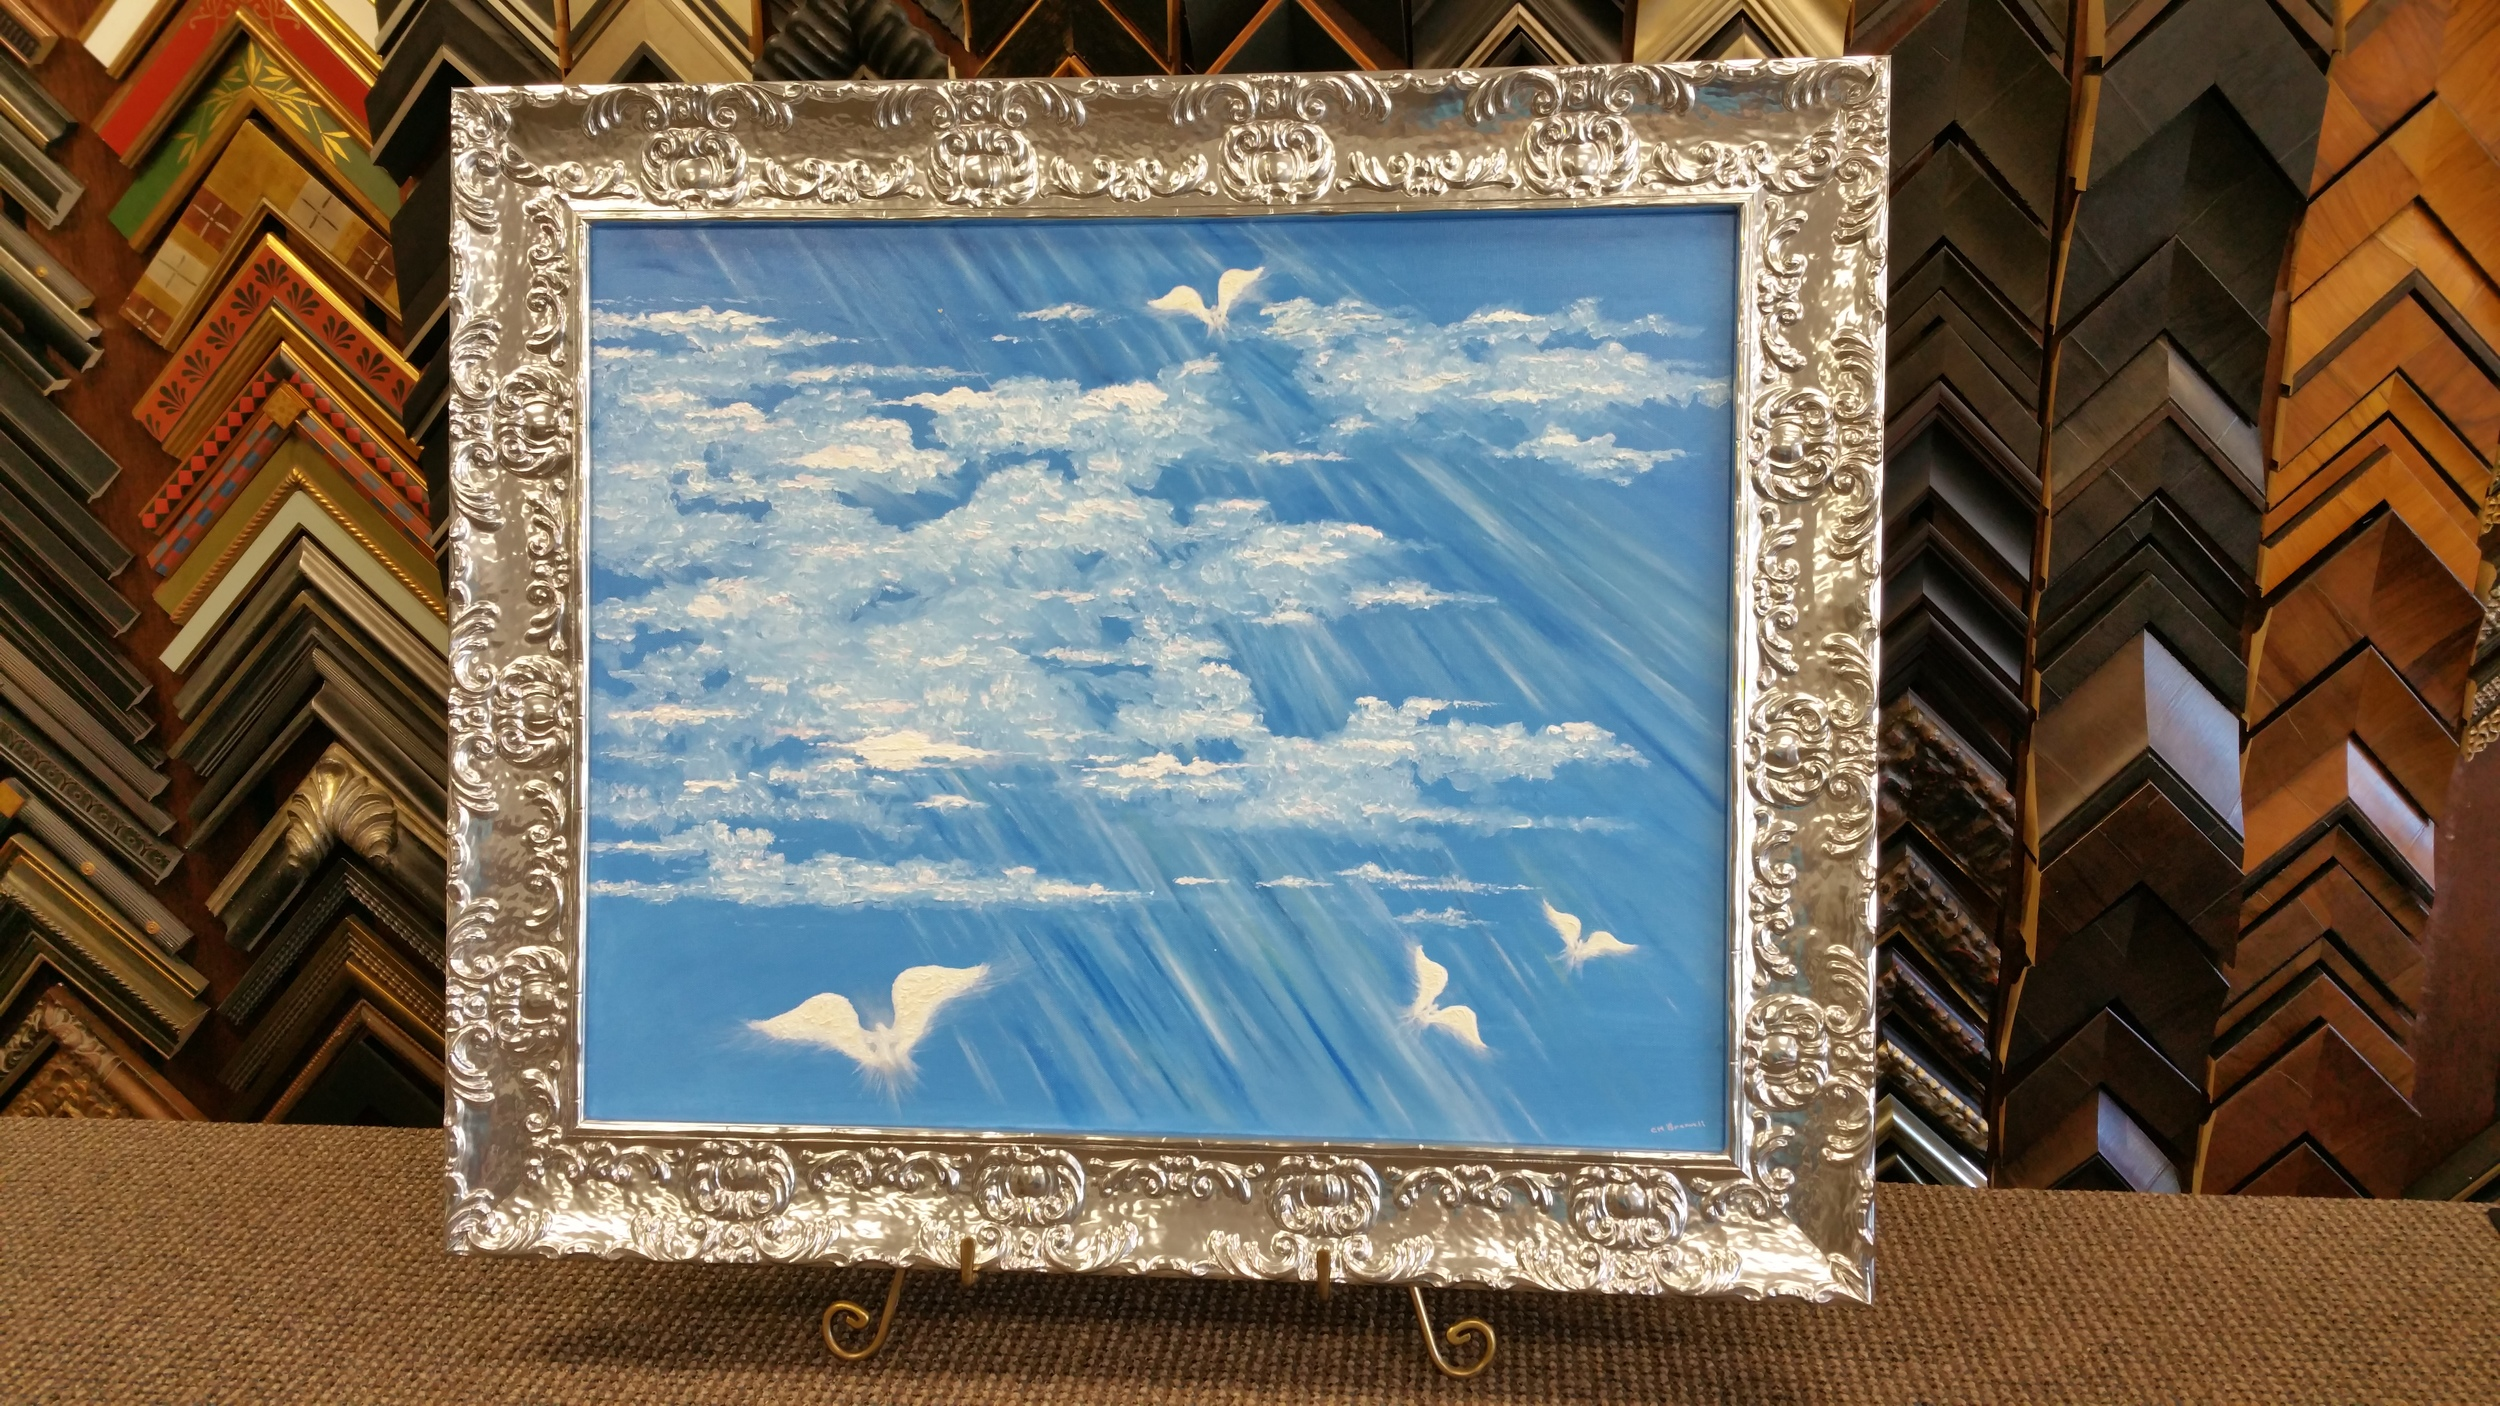 A beautiful painting by one of our customers Claiborne Braswell. It is framed in an elegant Roma Lavo frame.